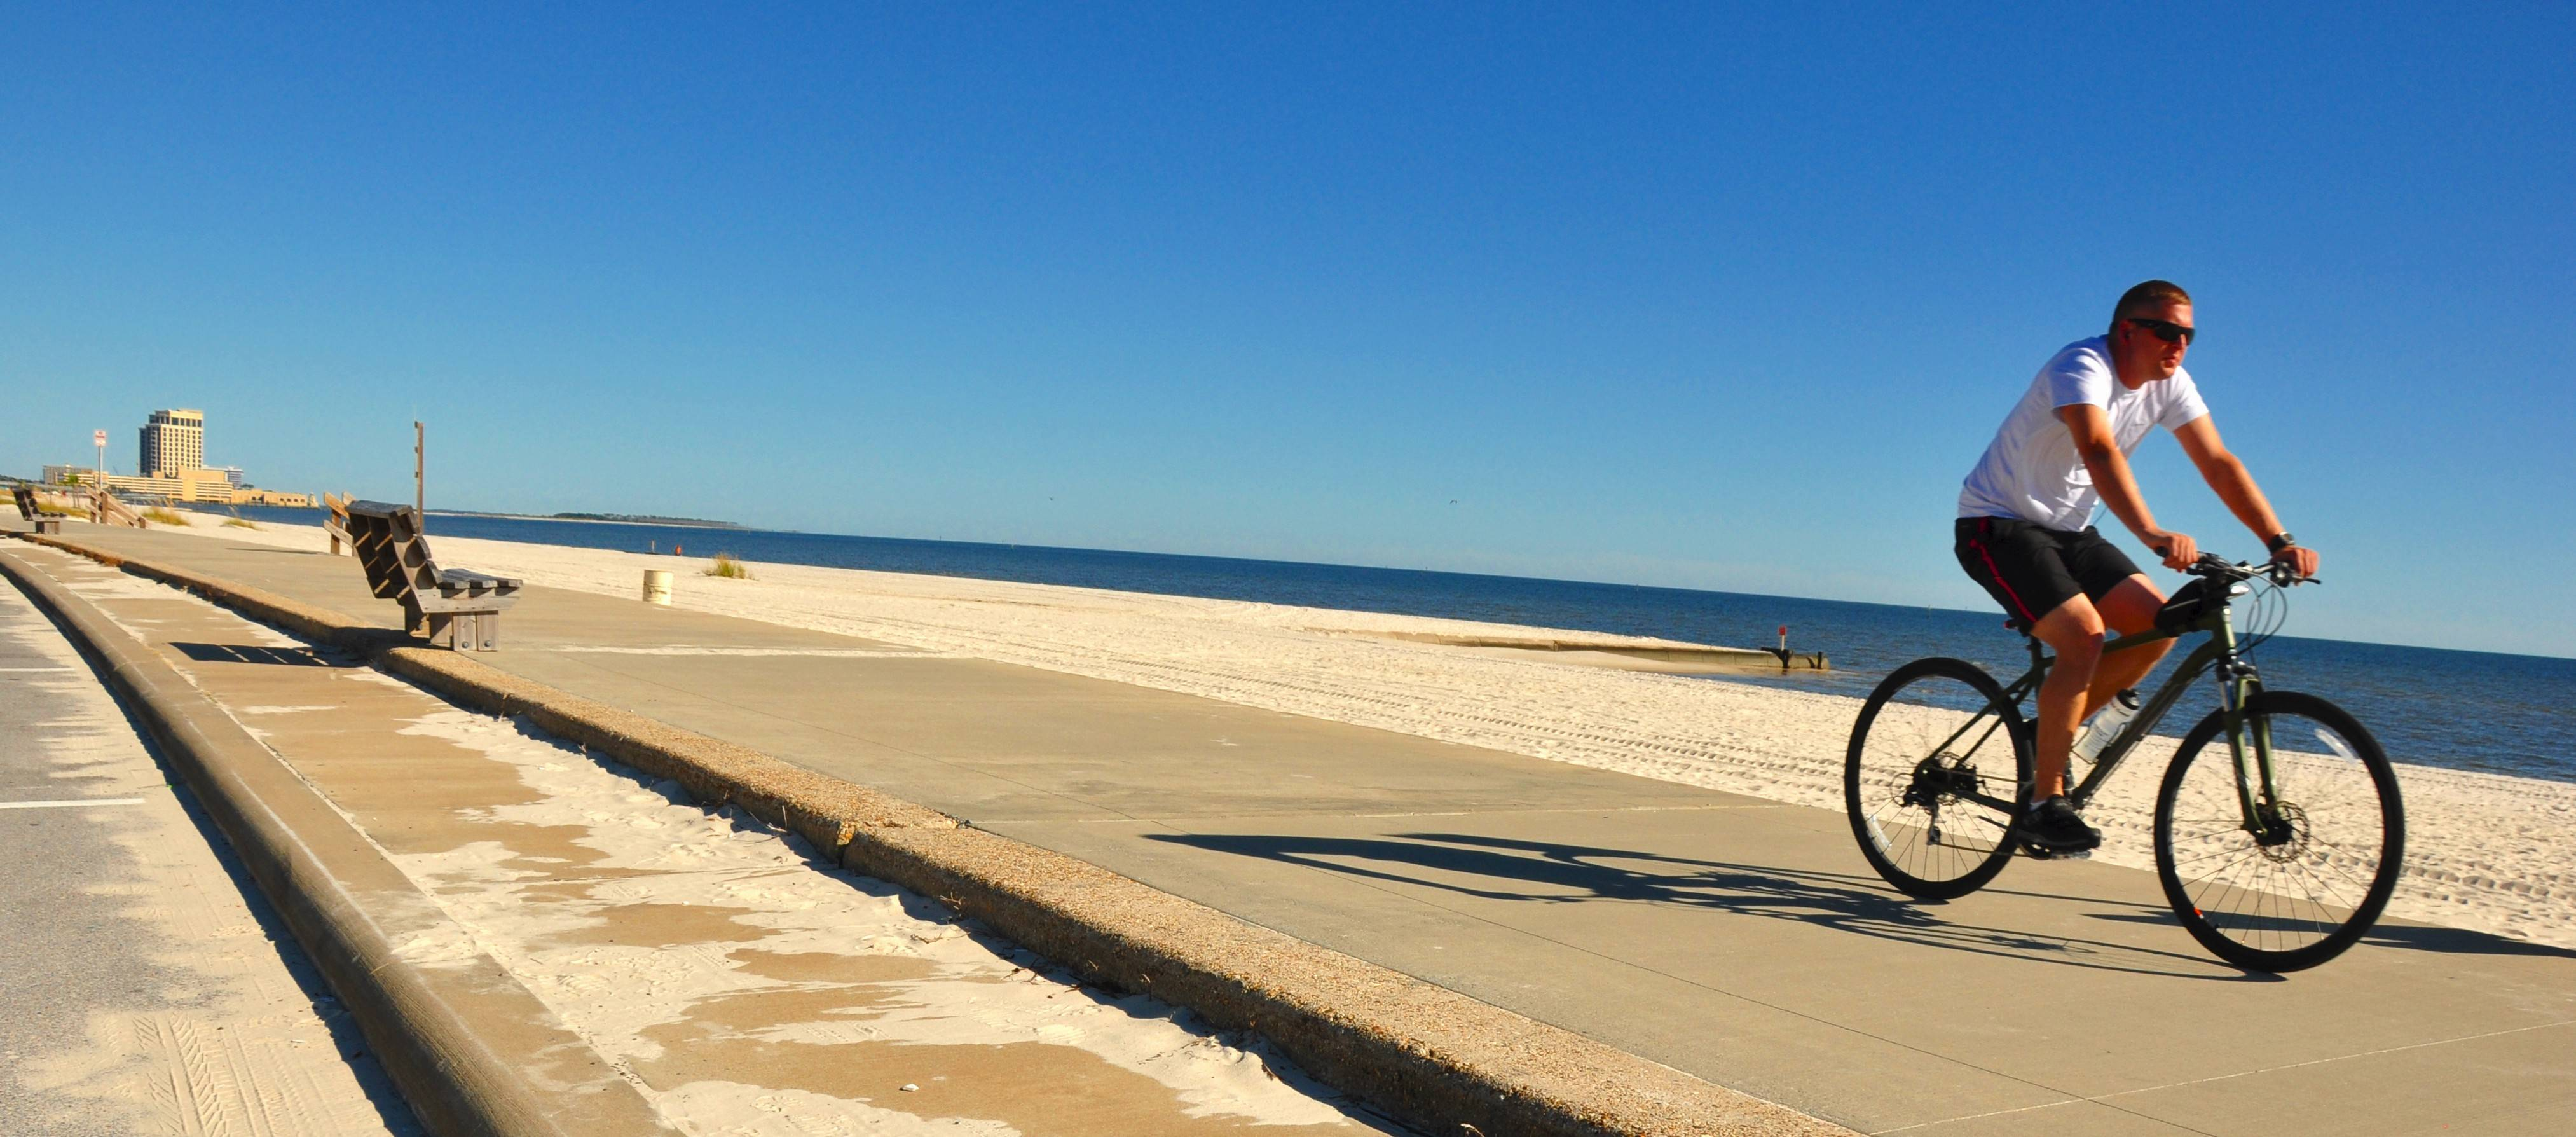 The beach along the Mississippi Sound stretches for 26 miles with a walkway for joggers and bicyclists.